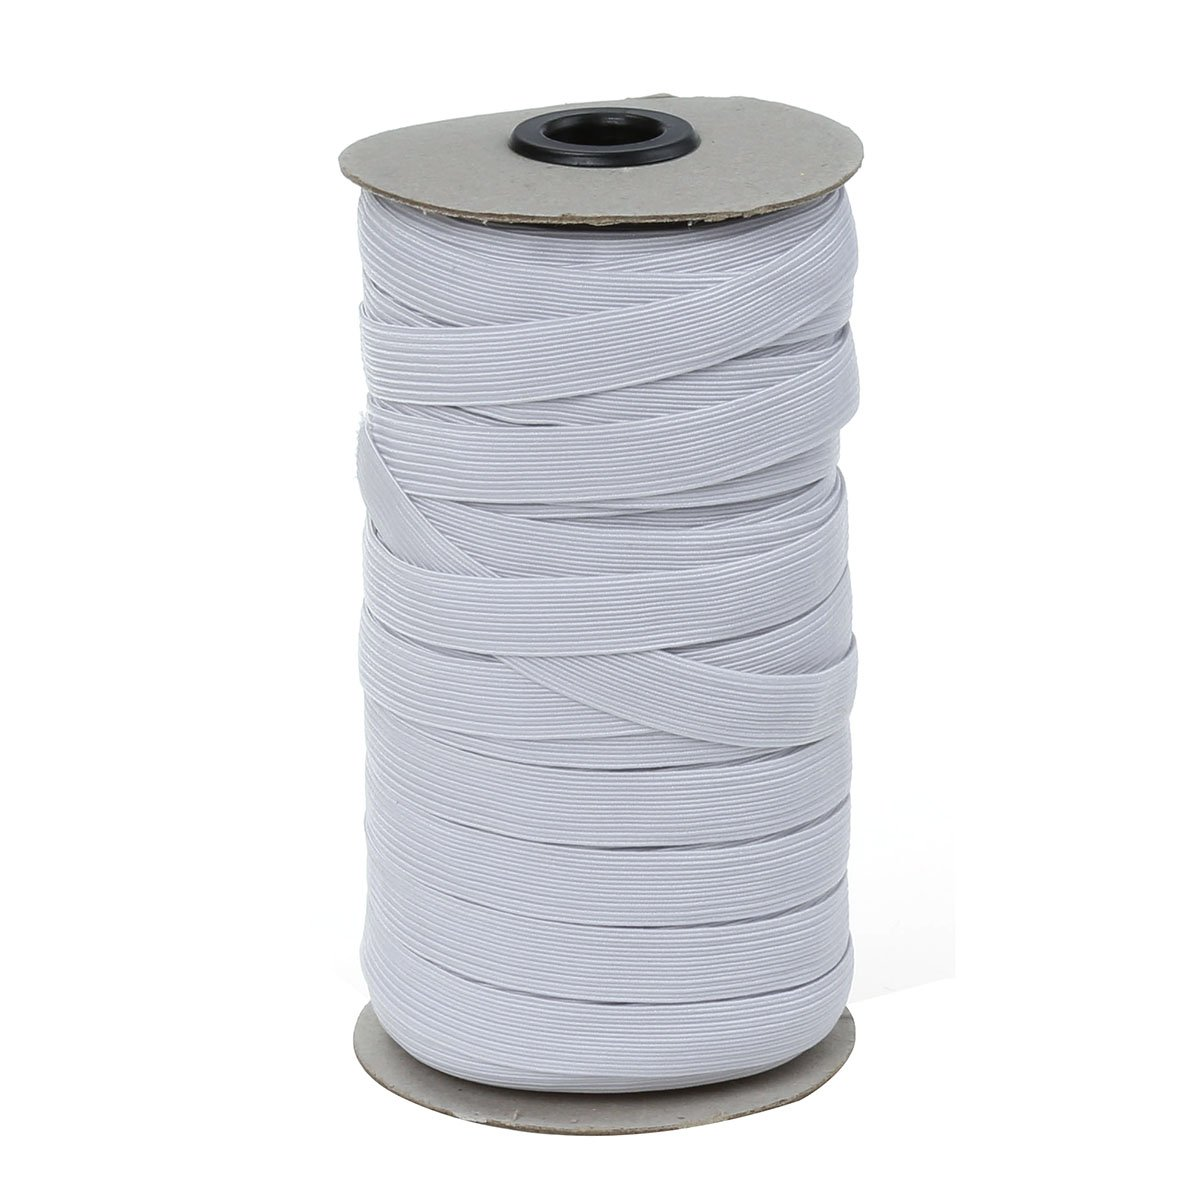 COTOWIN 1/2-inch White Braided Polyester Elastic Roll 45.7 Metres(50 Yards) XINZHEYUAN